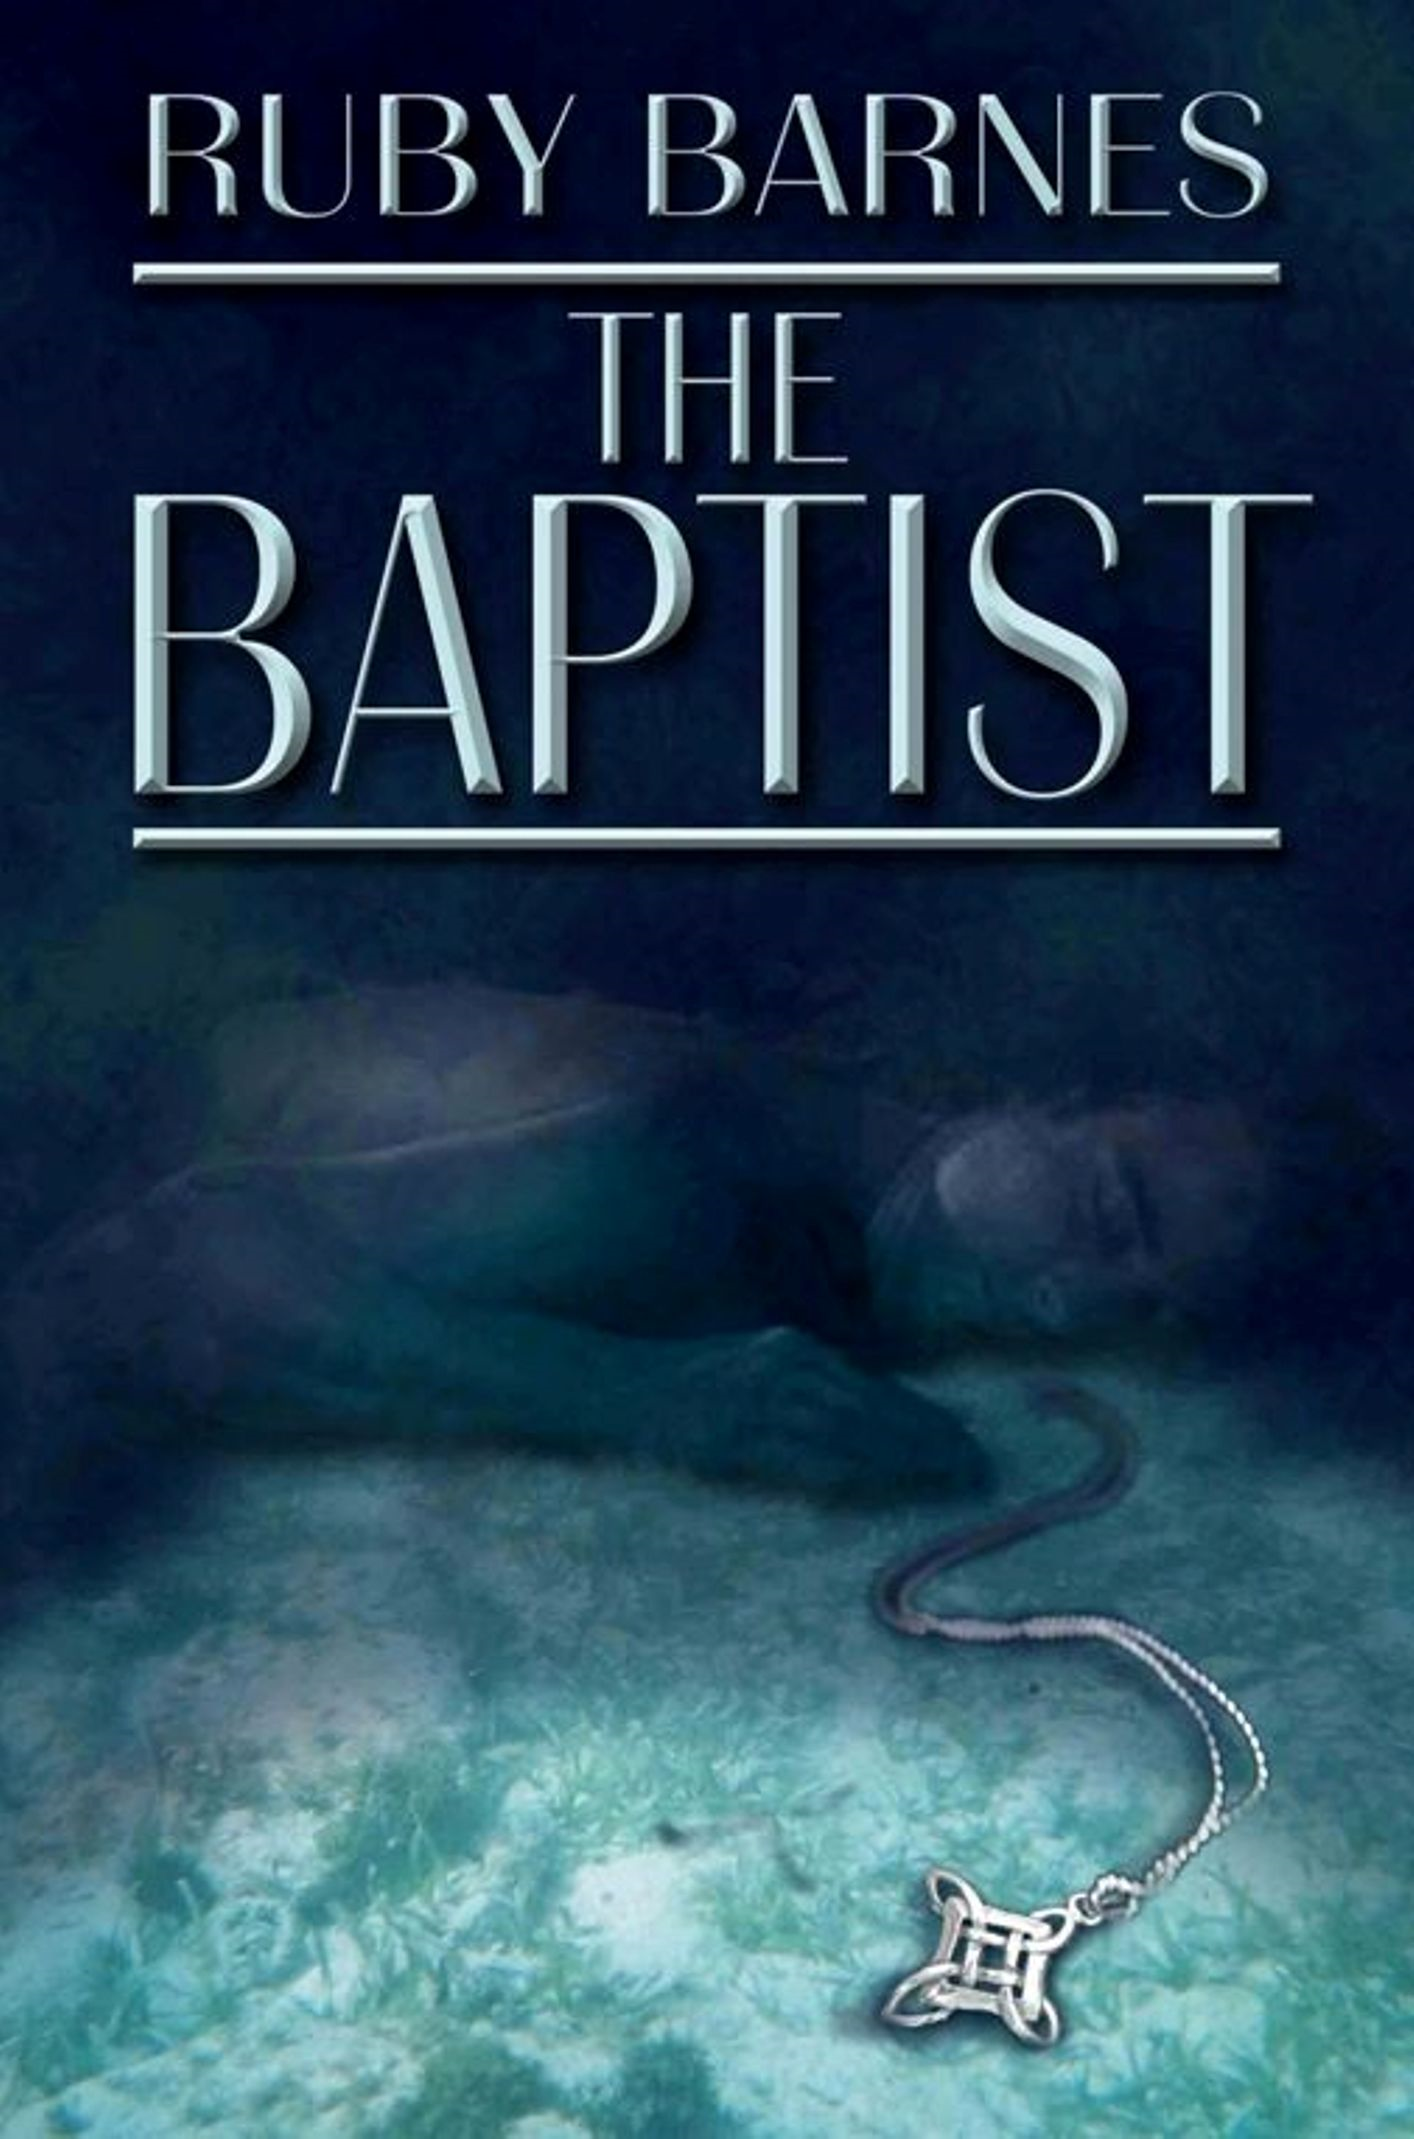 The Baptist By: Ruby Barnes